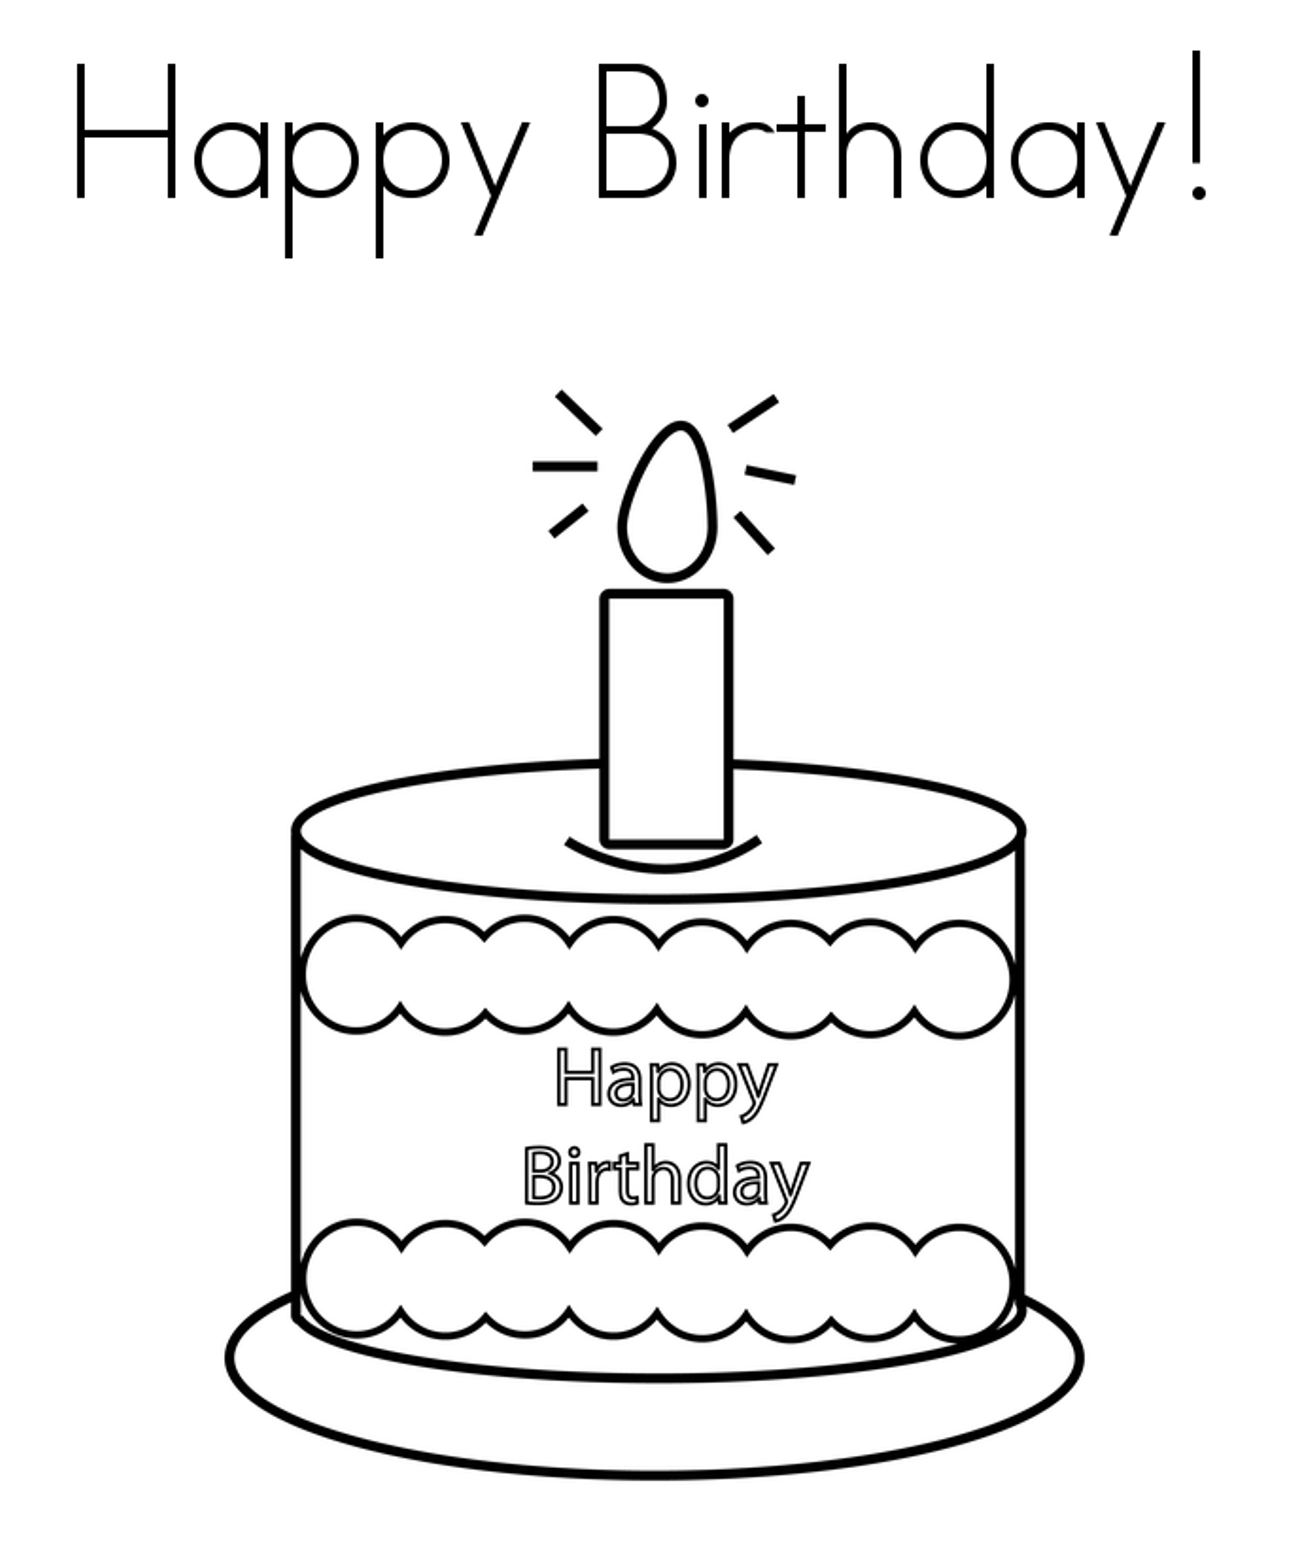 happy birthday cake coloring page Theme and Pictures